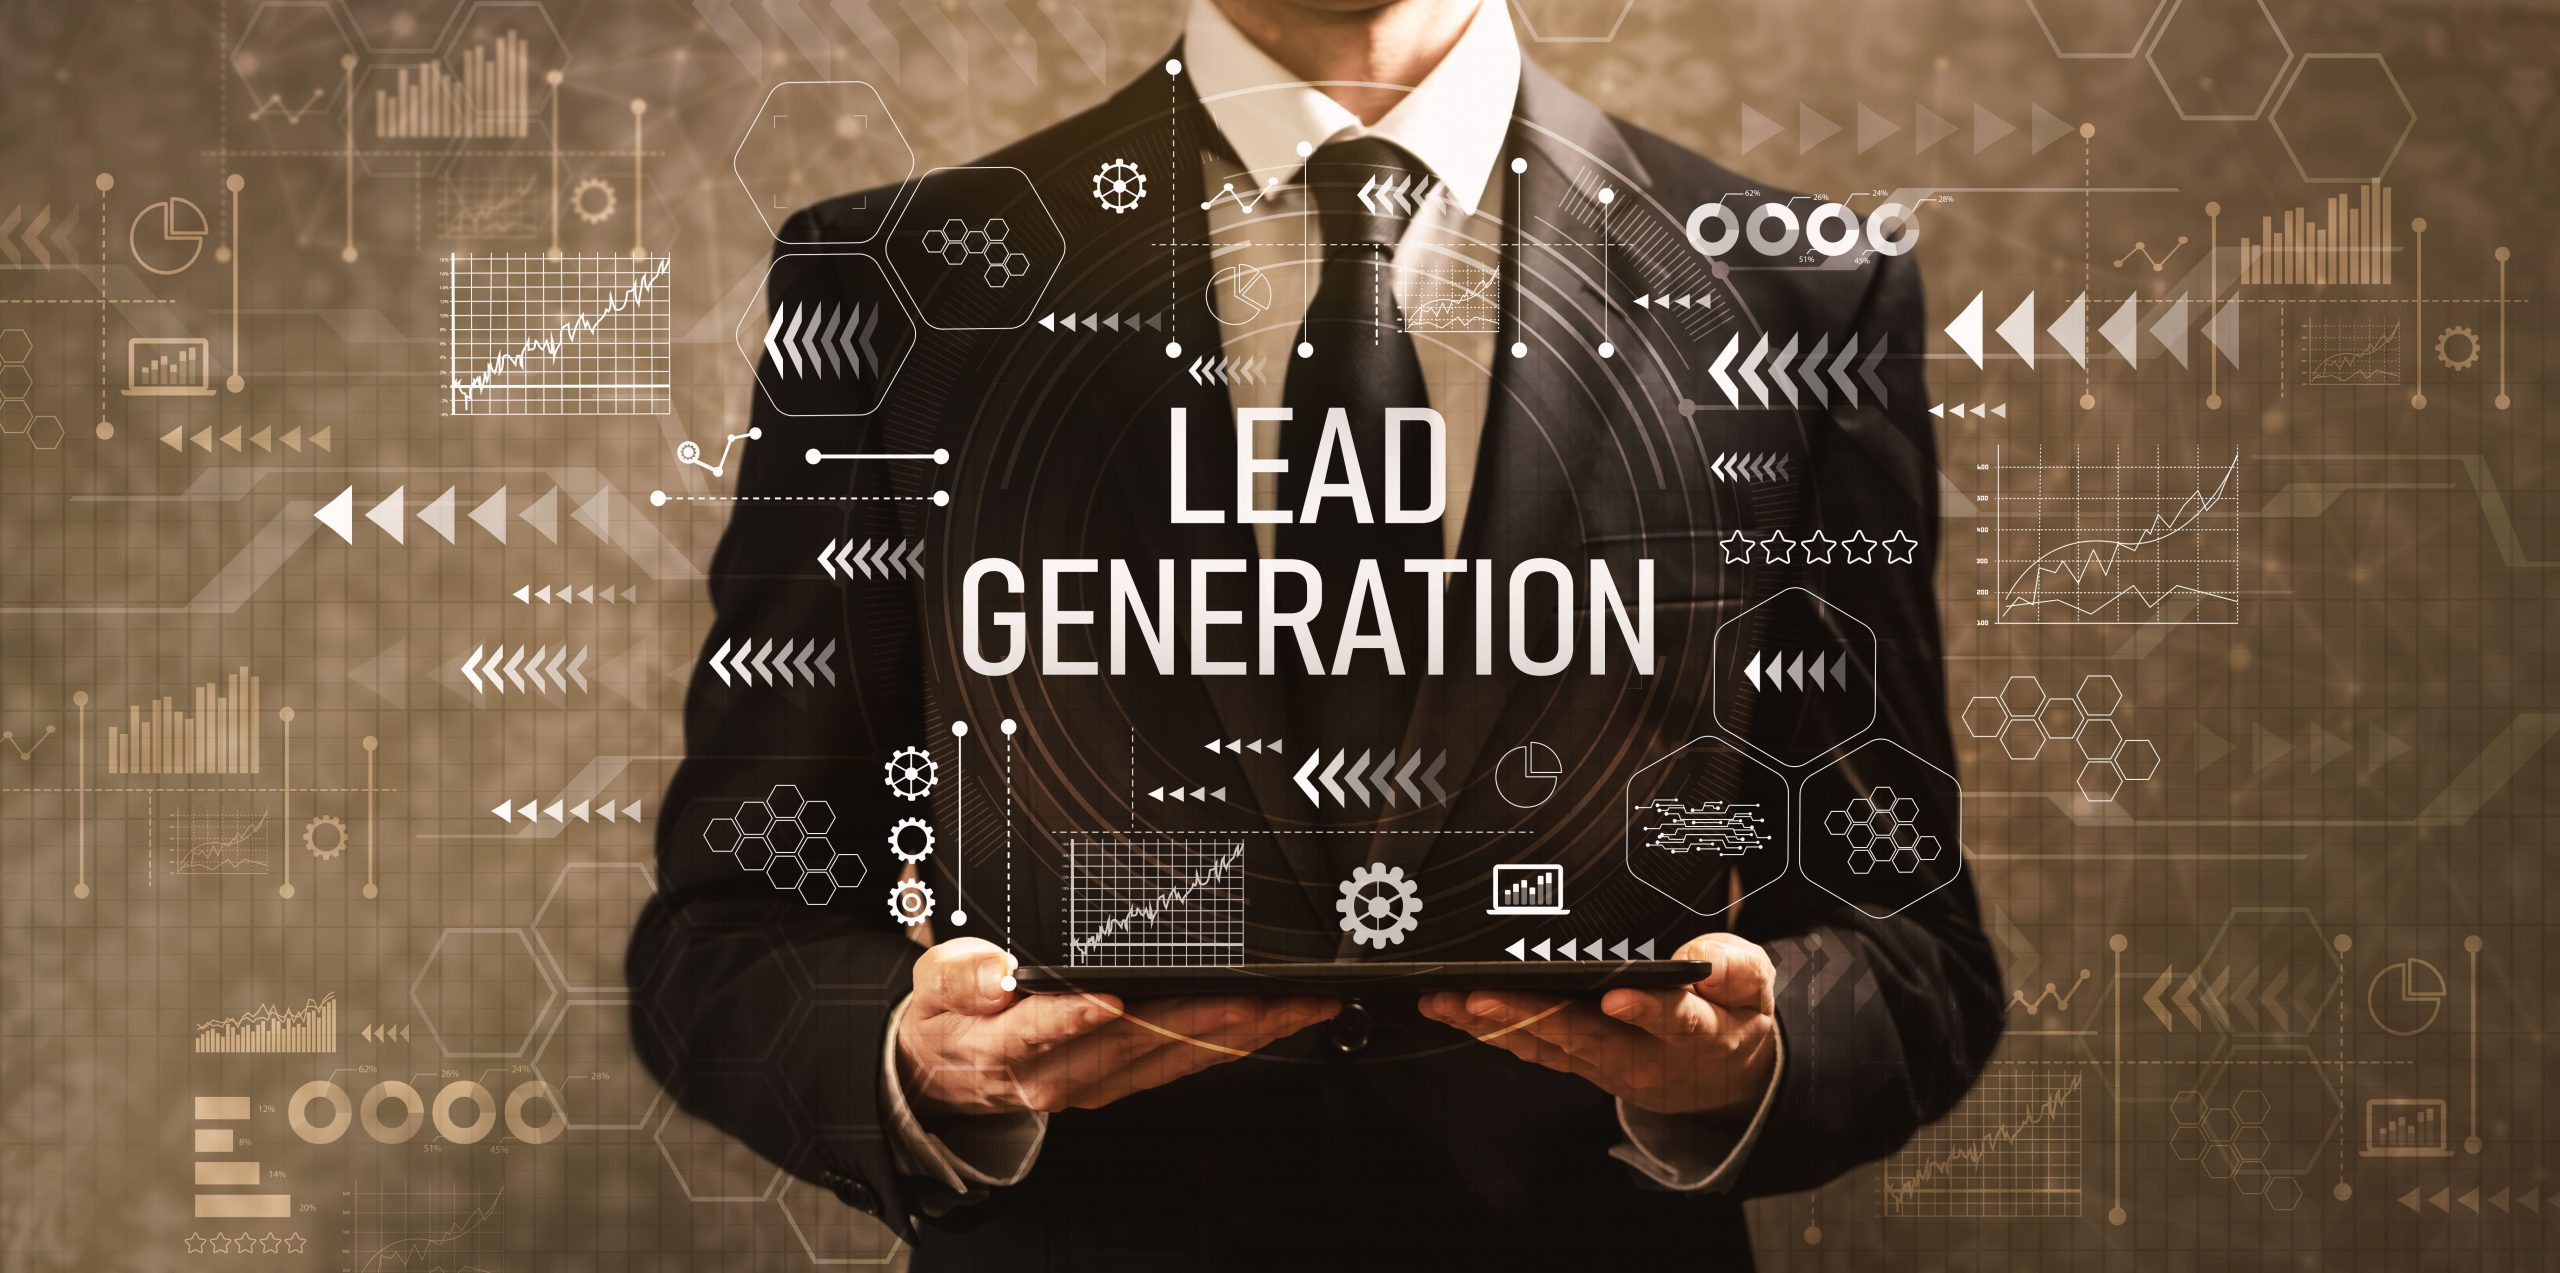 How Does Lead Generation Work And What Can It Do For Your Business?